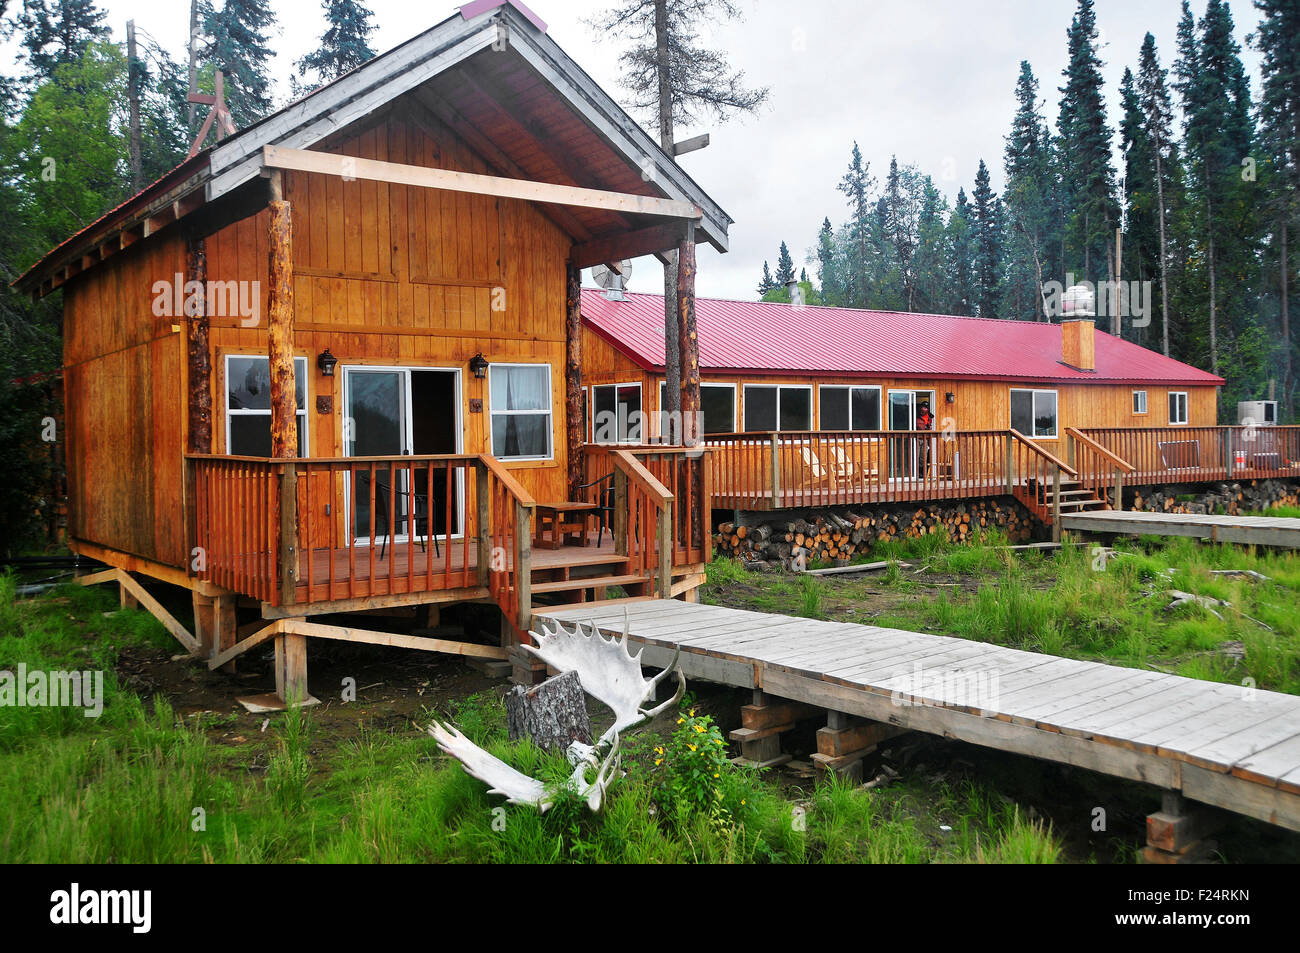 Alaska Aniak Fishing Lodge